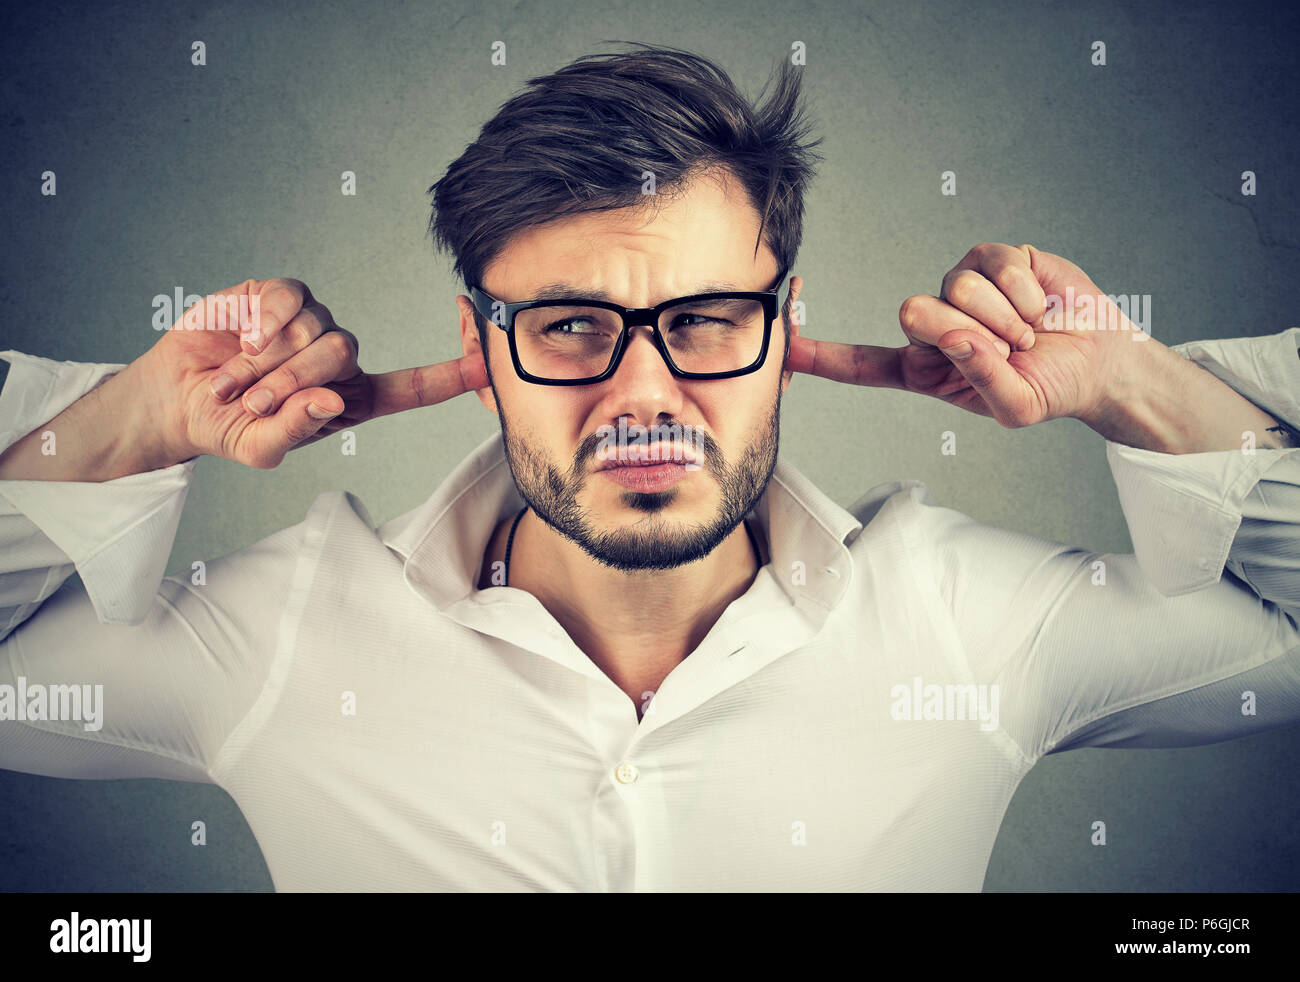 Young displeased man frowning and looking away while closing ears in irritation on gray background - Stock Image